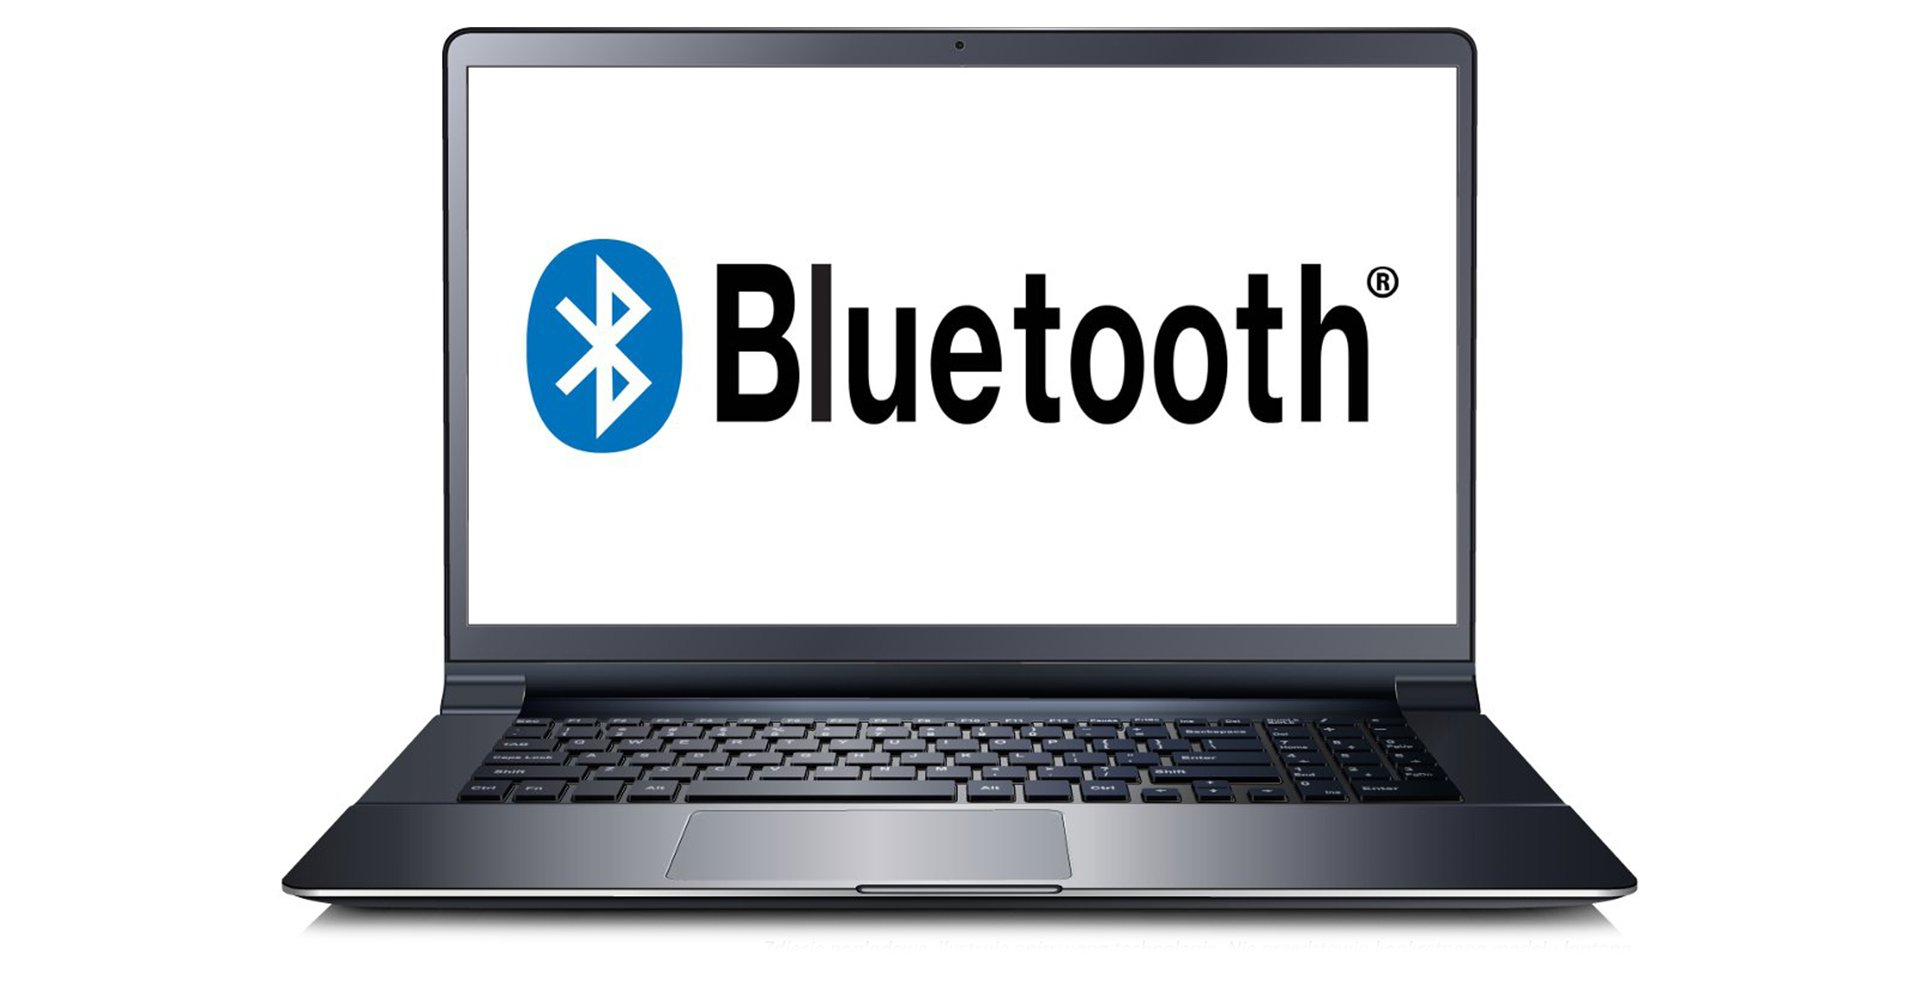 Dell Vostro 5471 i5-8250U 8GB 256GB Win10P                             Bluetooth